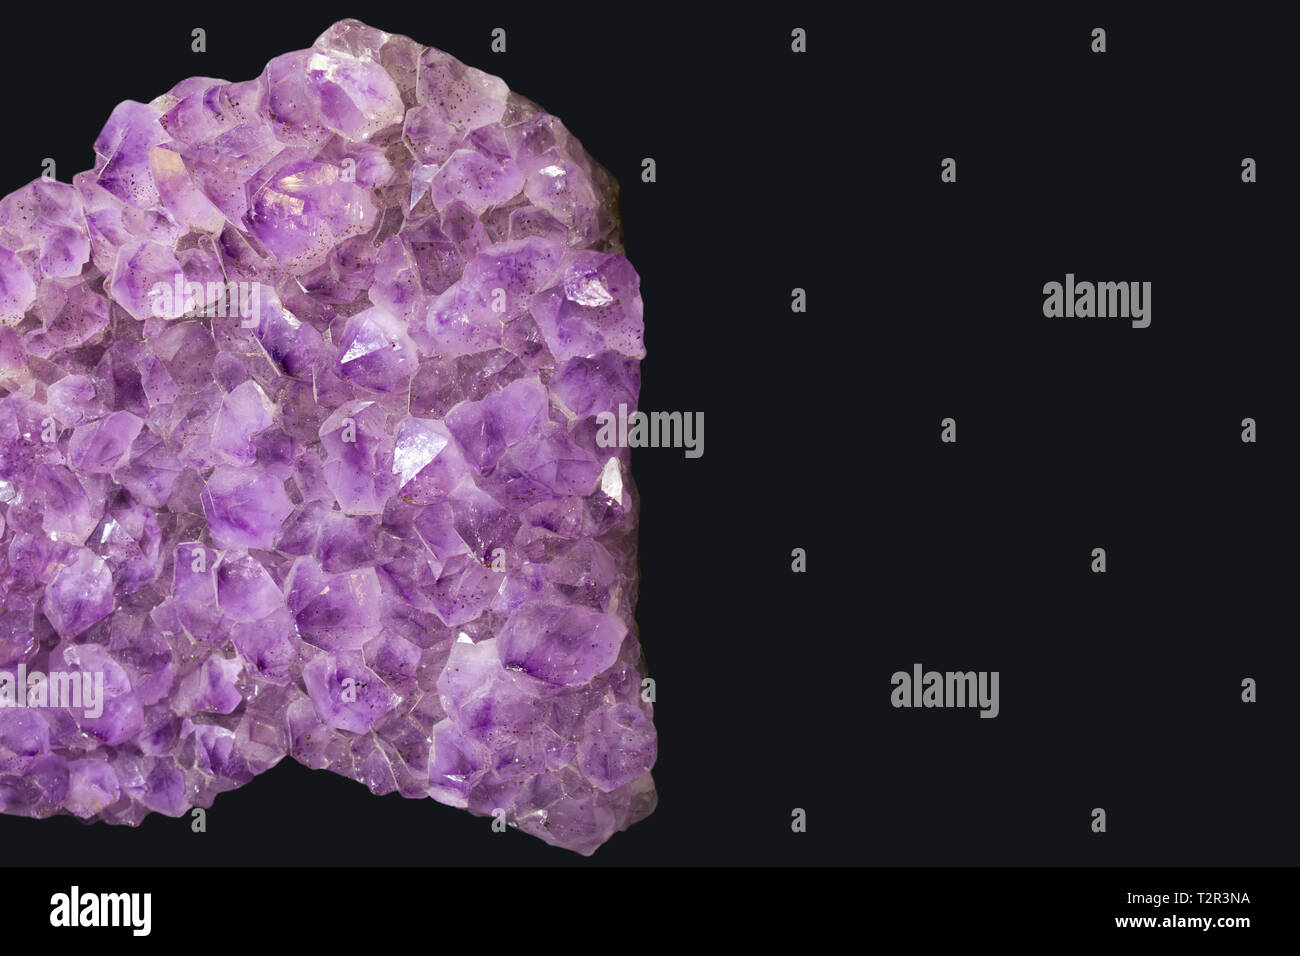 Large piece of living raw amethyst at the minerals exhibition isolated on black background - Stock Image